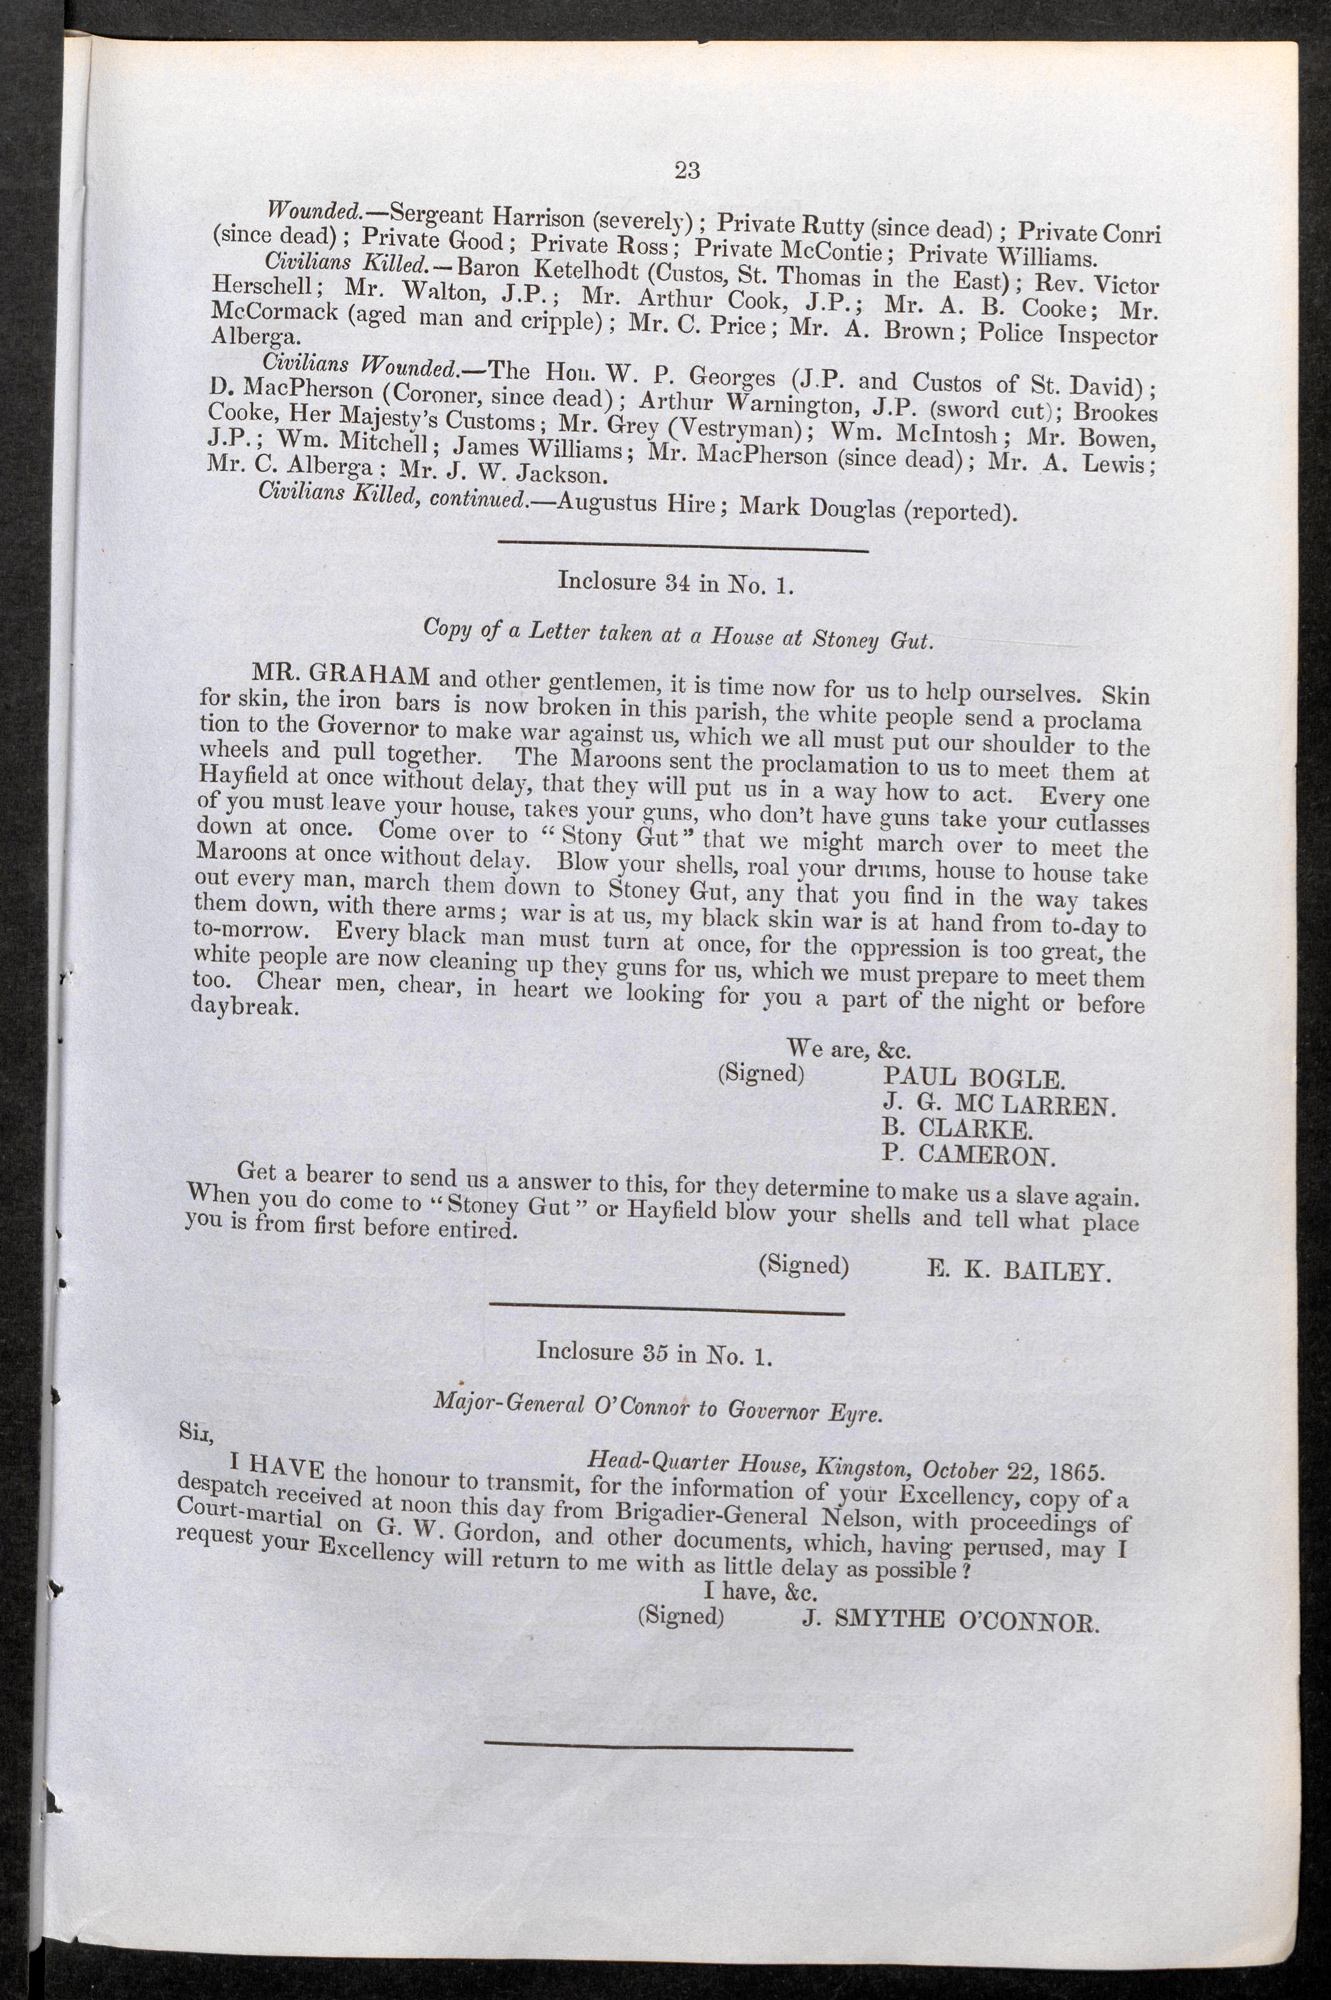 Proclamation of 17 October signed by Paul Bogle and his associates